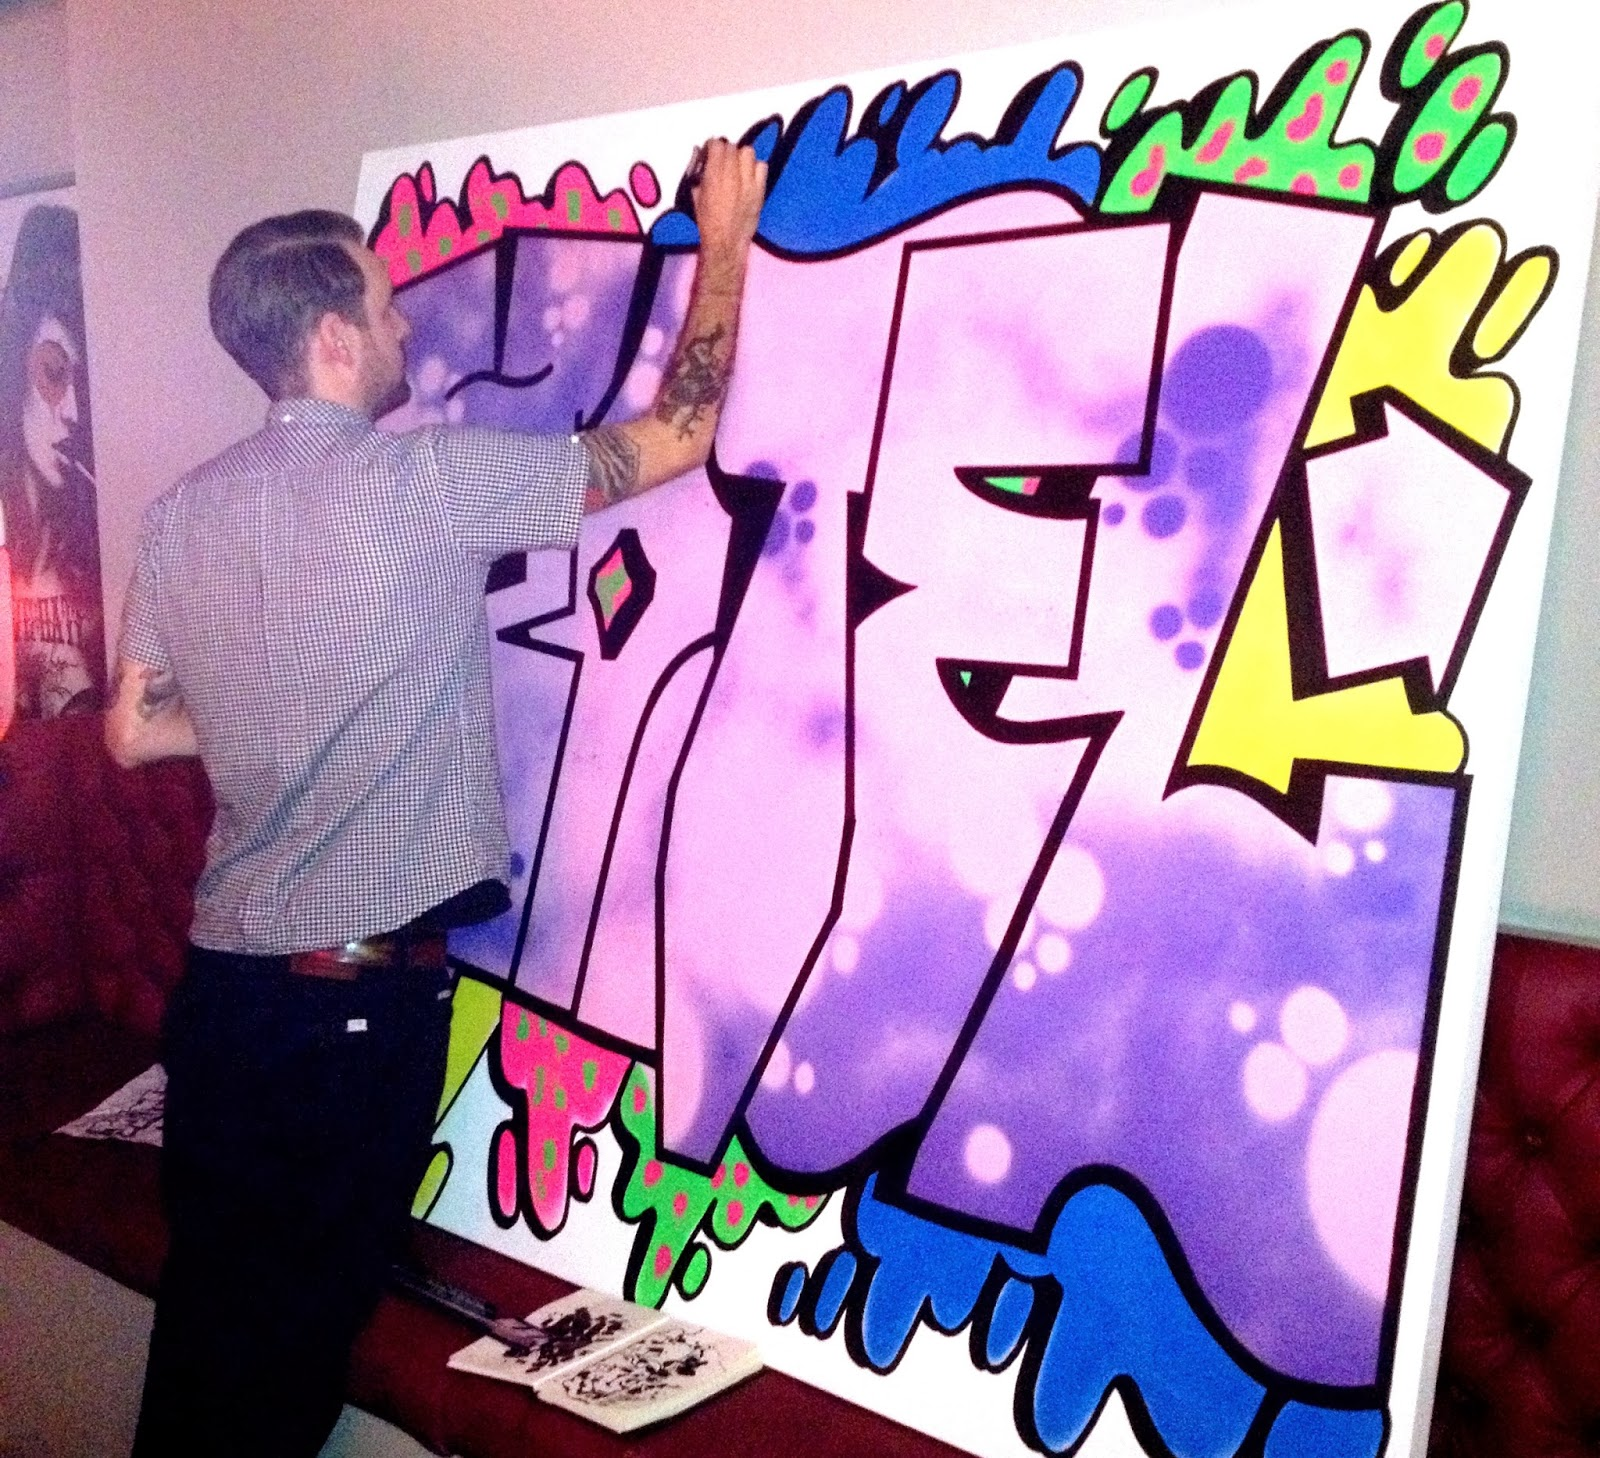 Live_graffiti_artist_at_fashion_event